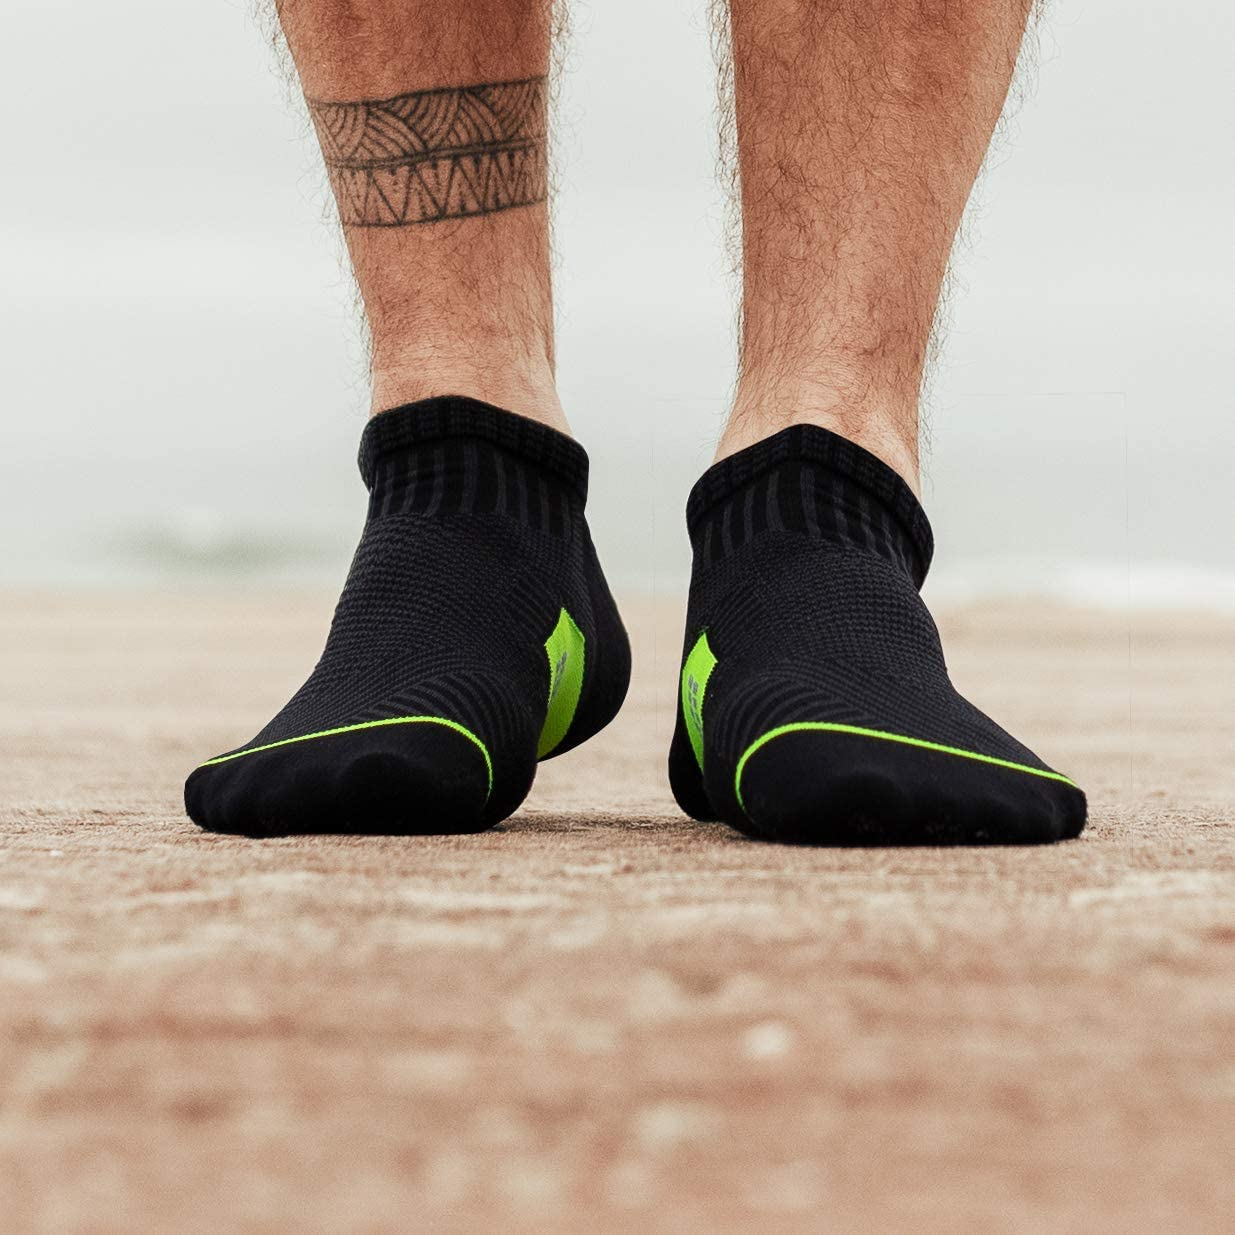 Ankle Cut Rockay Accelerate Anti-Blister Running Socks for Men and Women Cushion